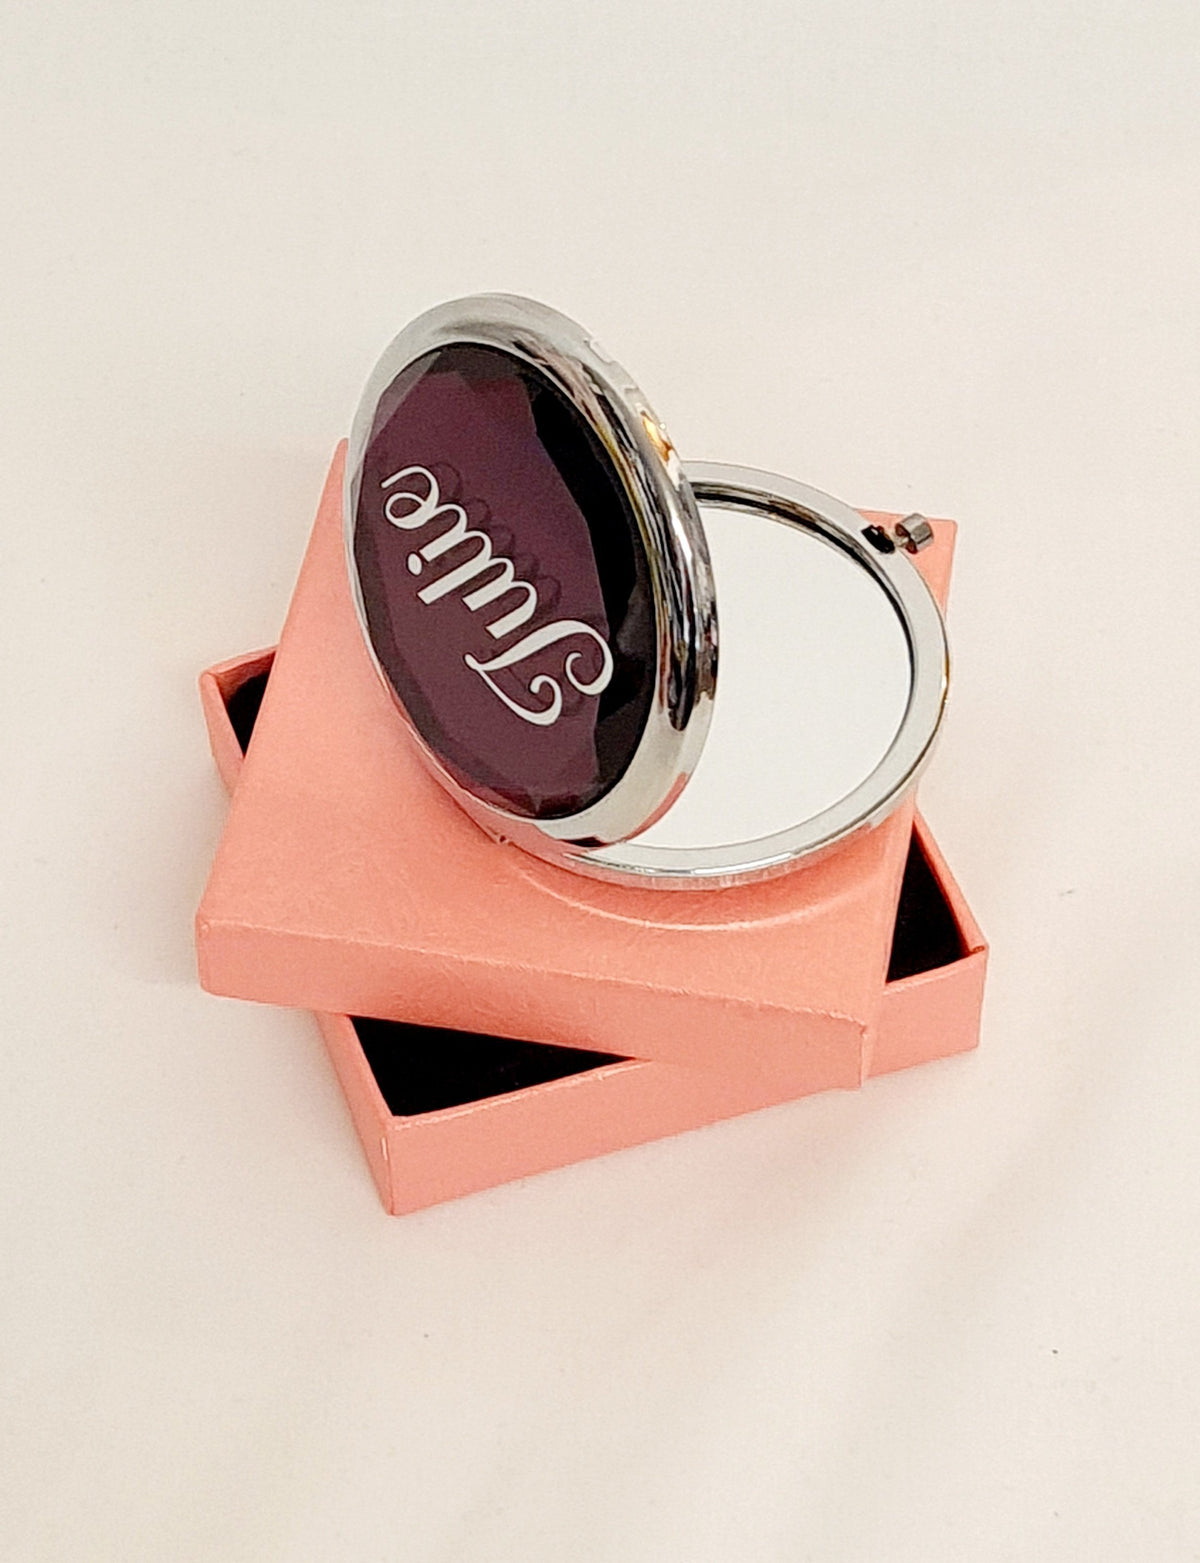 Compact beauty mirror with geometric design - BCV Personalised